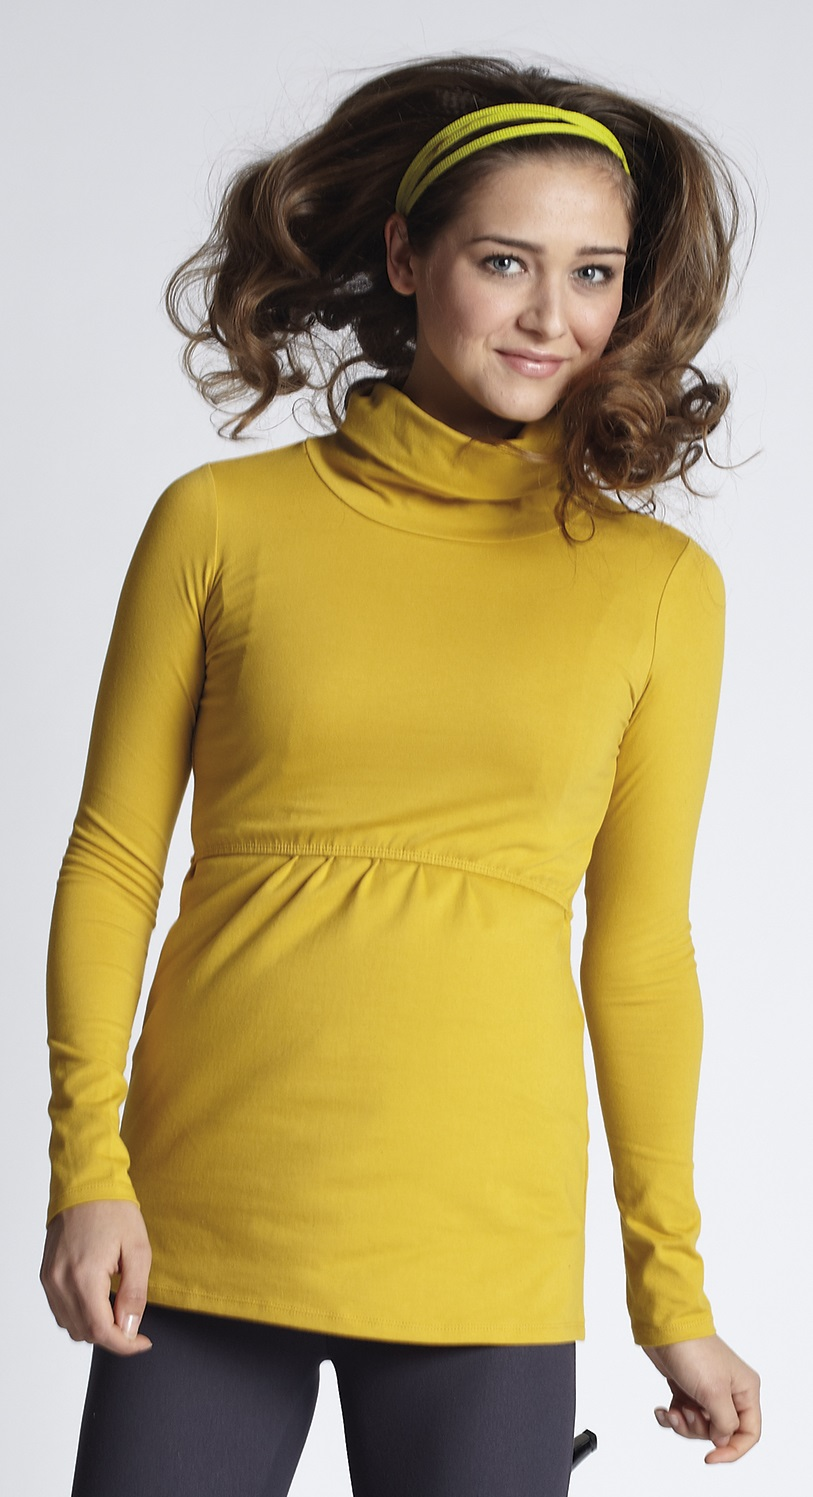 mothers-en-vogue-must-have-nursing-turtleneck-ocre.jpg